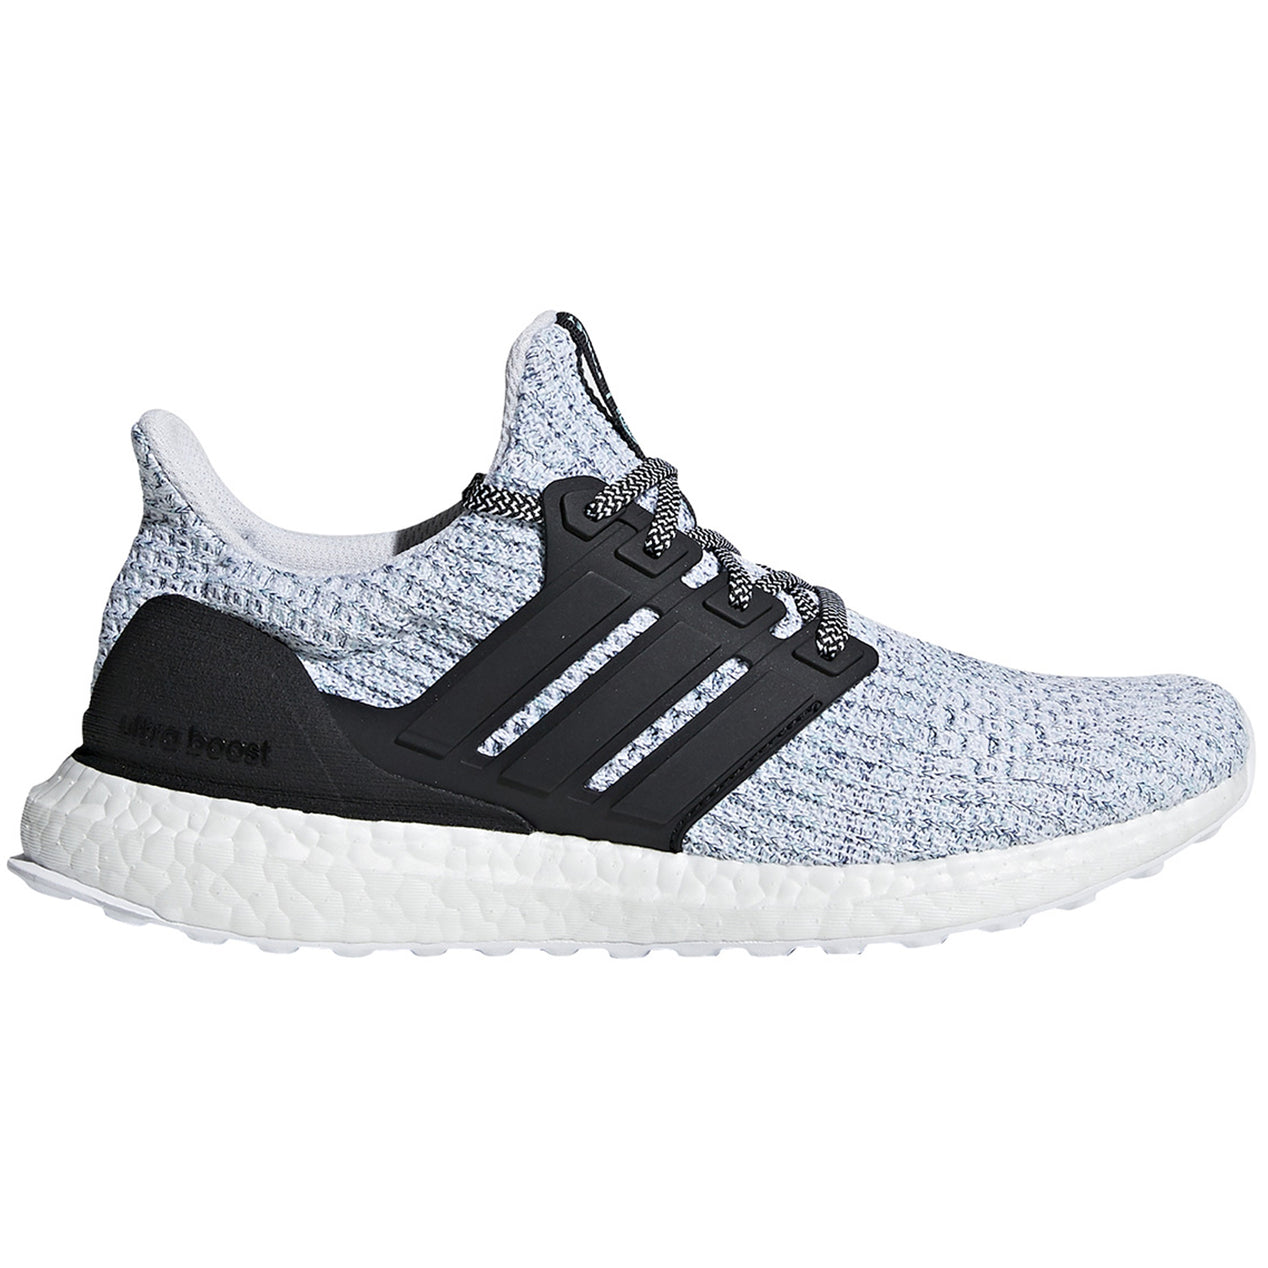 Adidas UltraBOOST Parley Running Shoes Women's